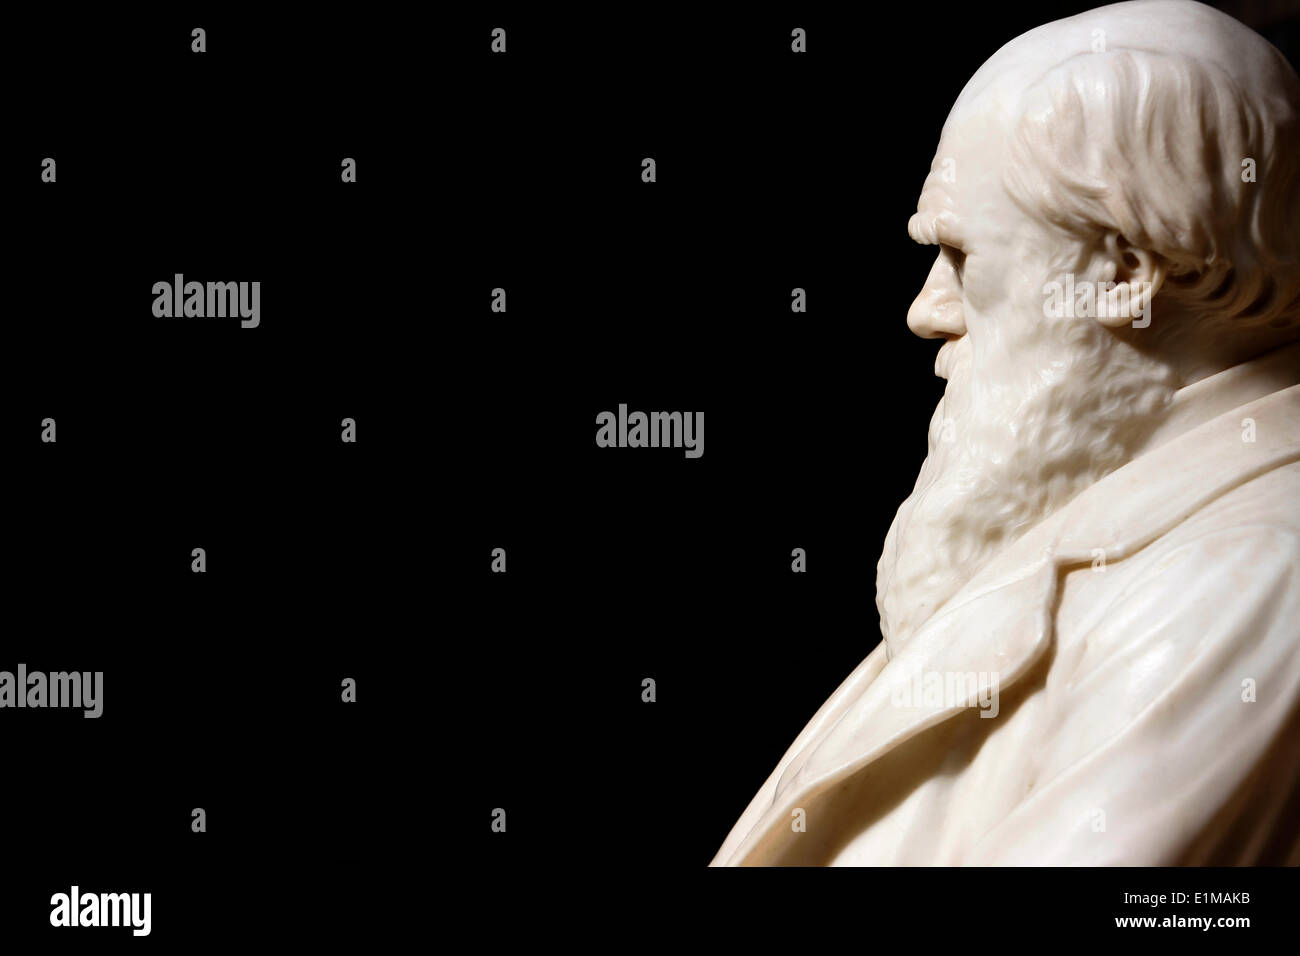 Statue of Darwin in the Natural History Museum, London - Stock Image